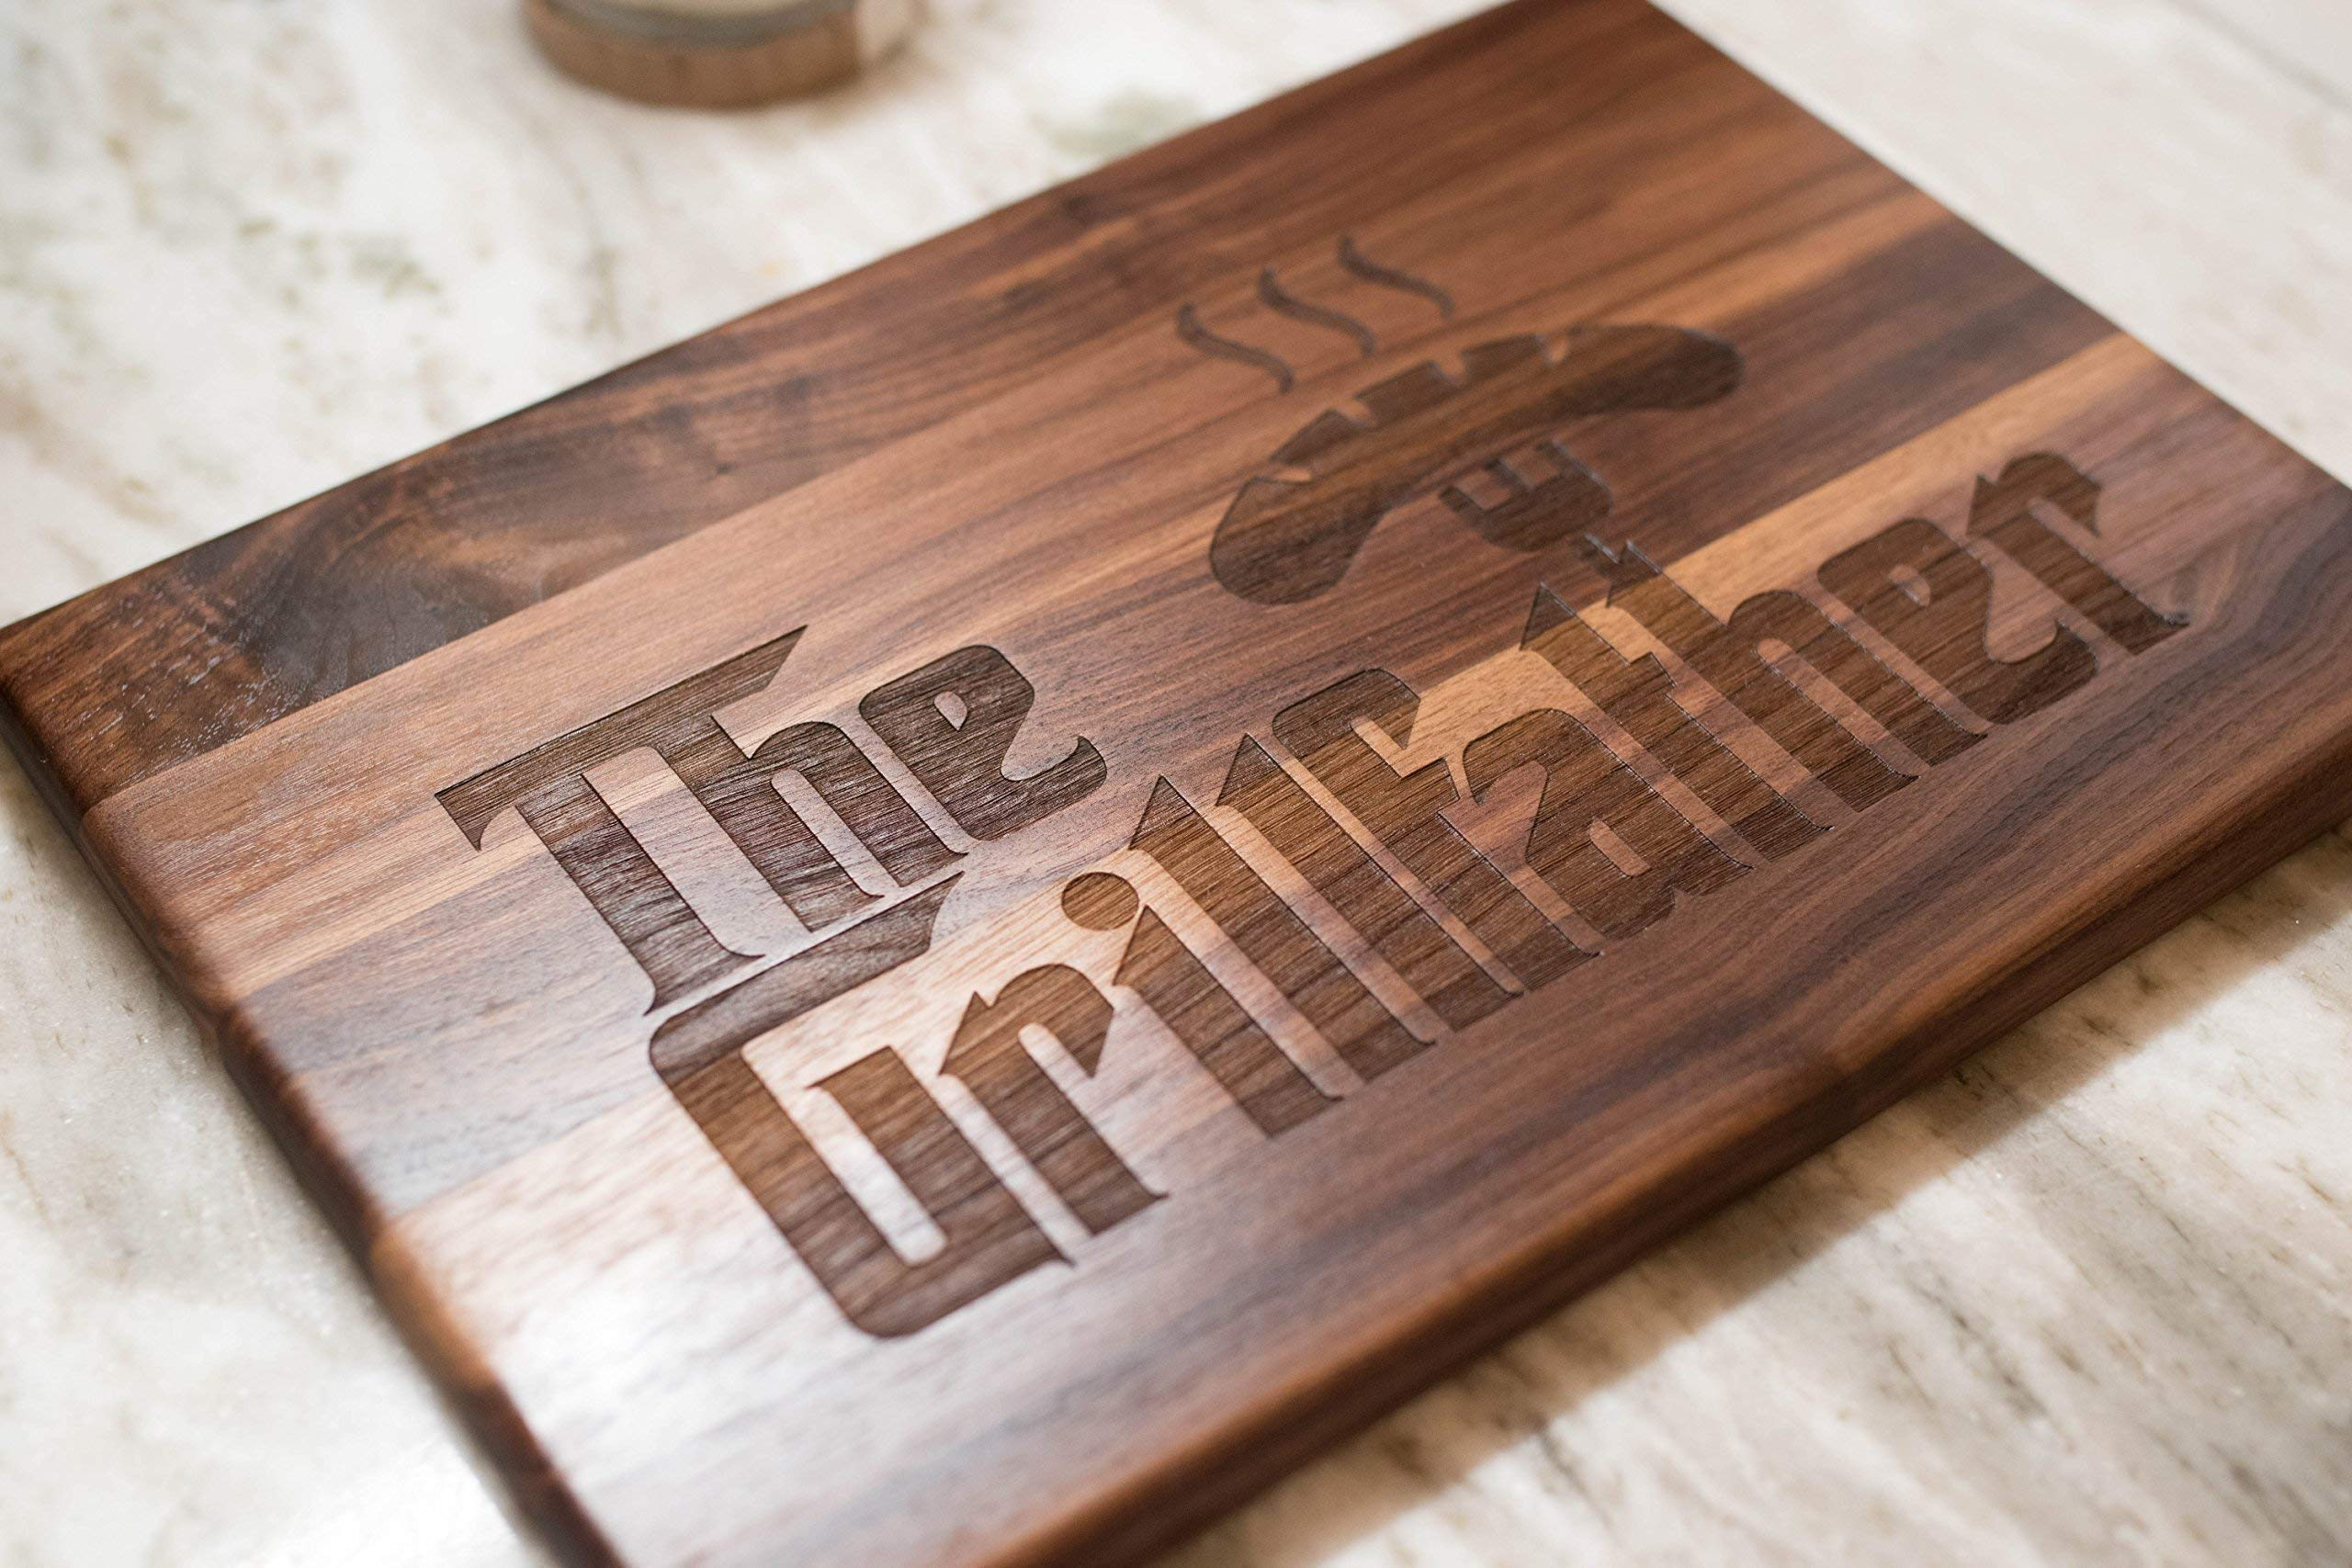 Fathers Day Gift for Dad - The Grillfather Cutting Board is a perfect gift for Dad, Stepfather gift, and grandfather gift. by NakedWoodWorks (Image #2)